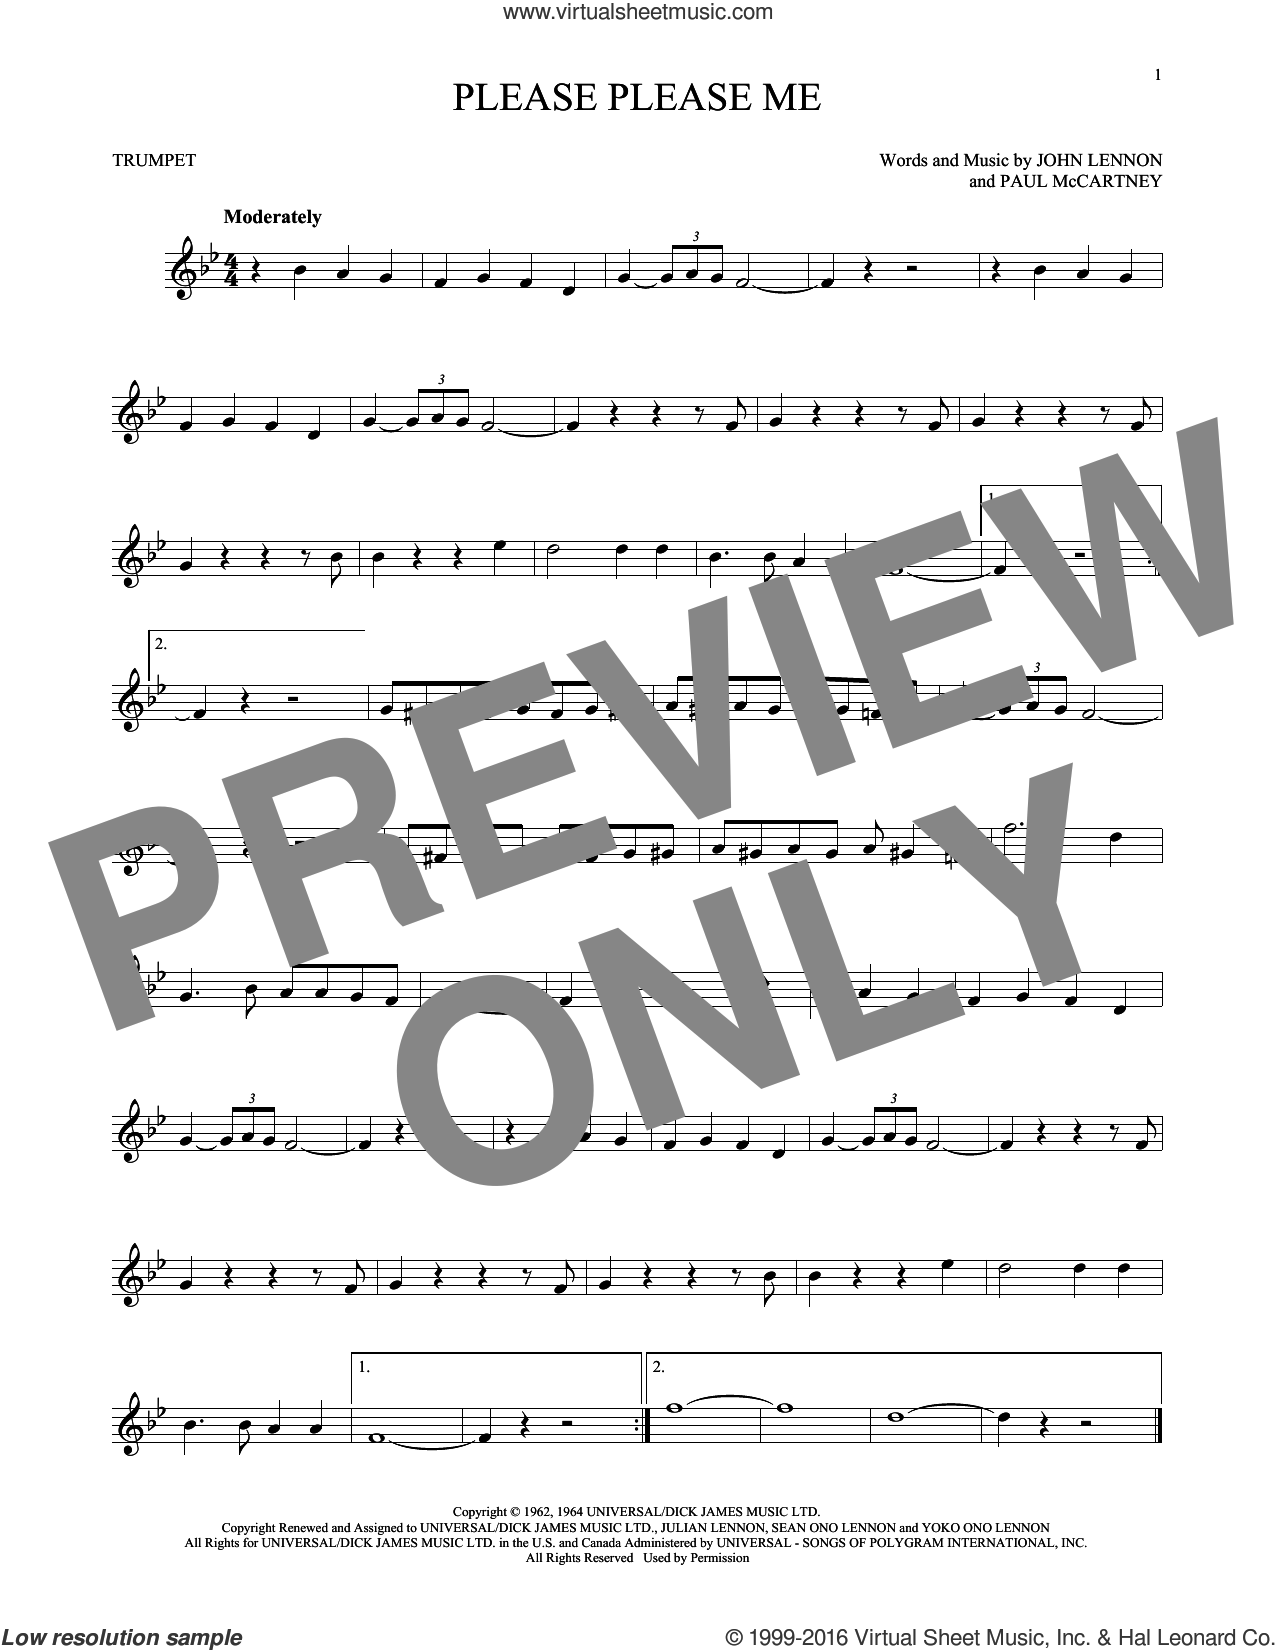 Please Please Me sheet music for trumpet solo by The Beatles, John Lennon and Paul McCartney, intermediate skill level